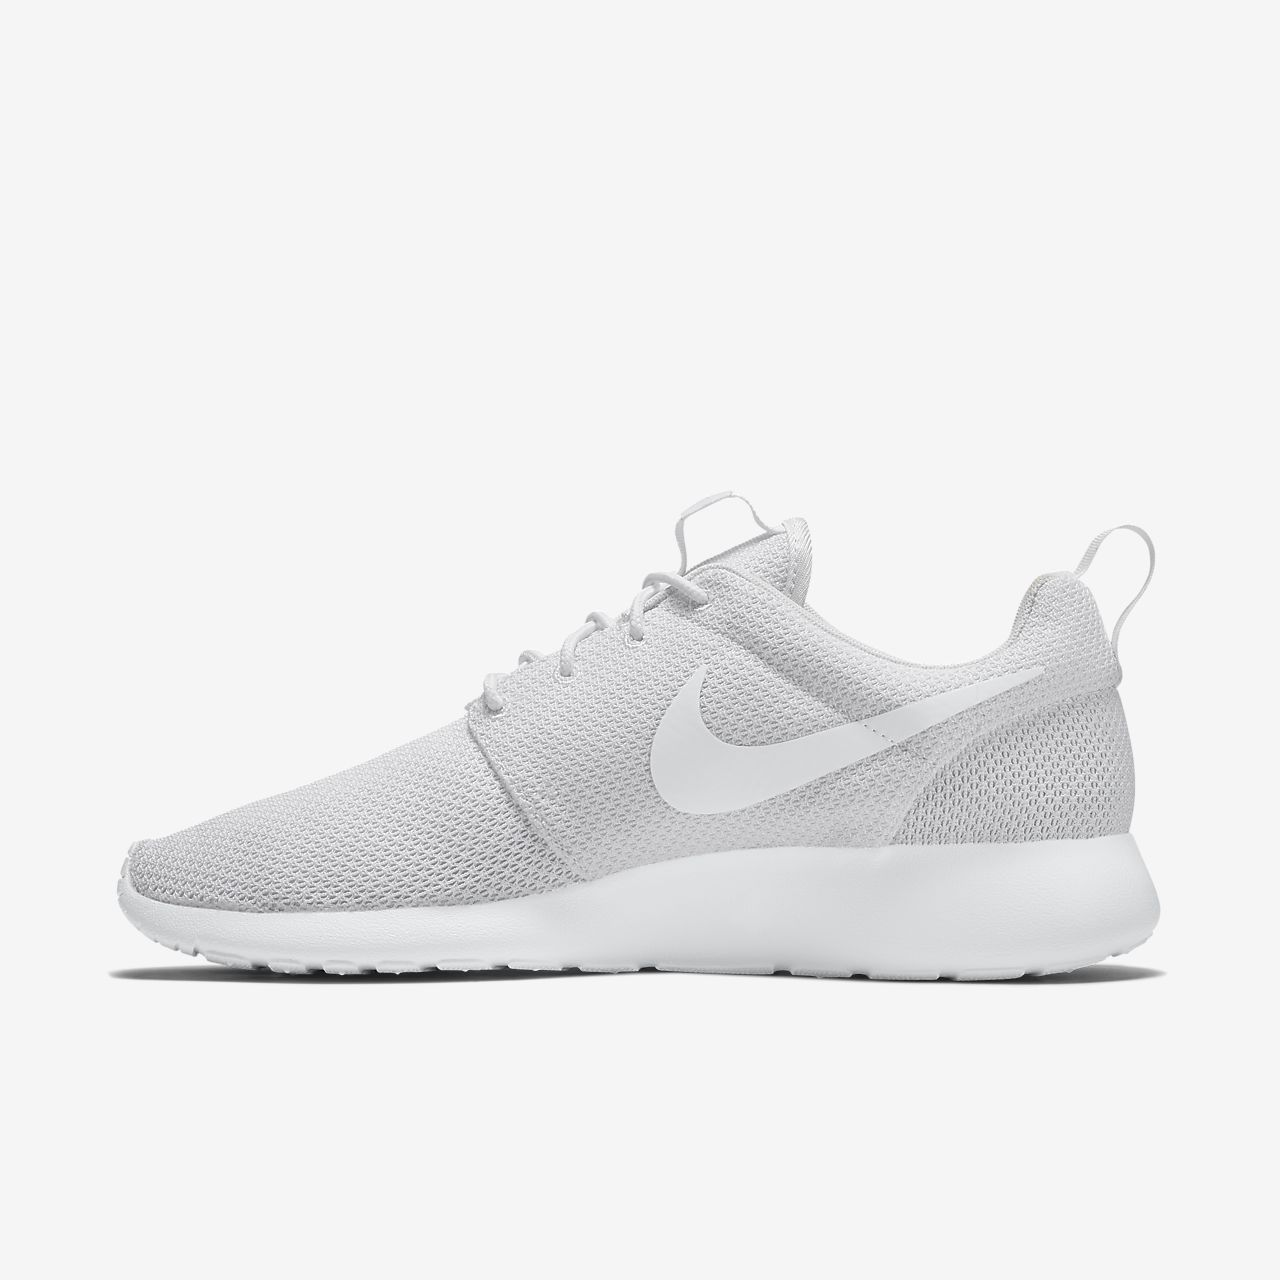 29a37c385fb8 Nike Roshe One Men s Shoe. Nike.com